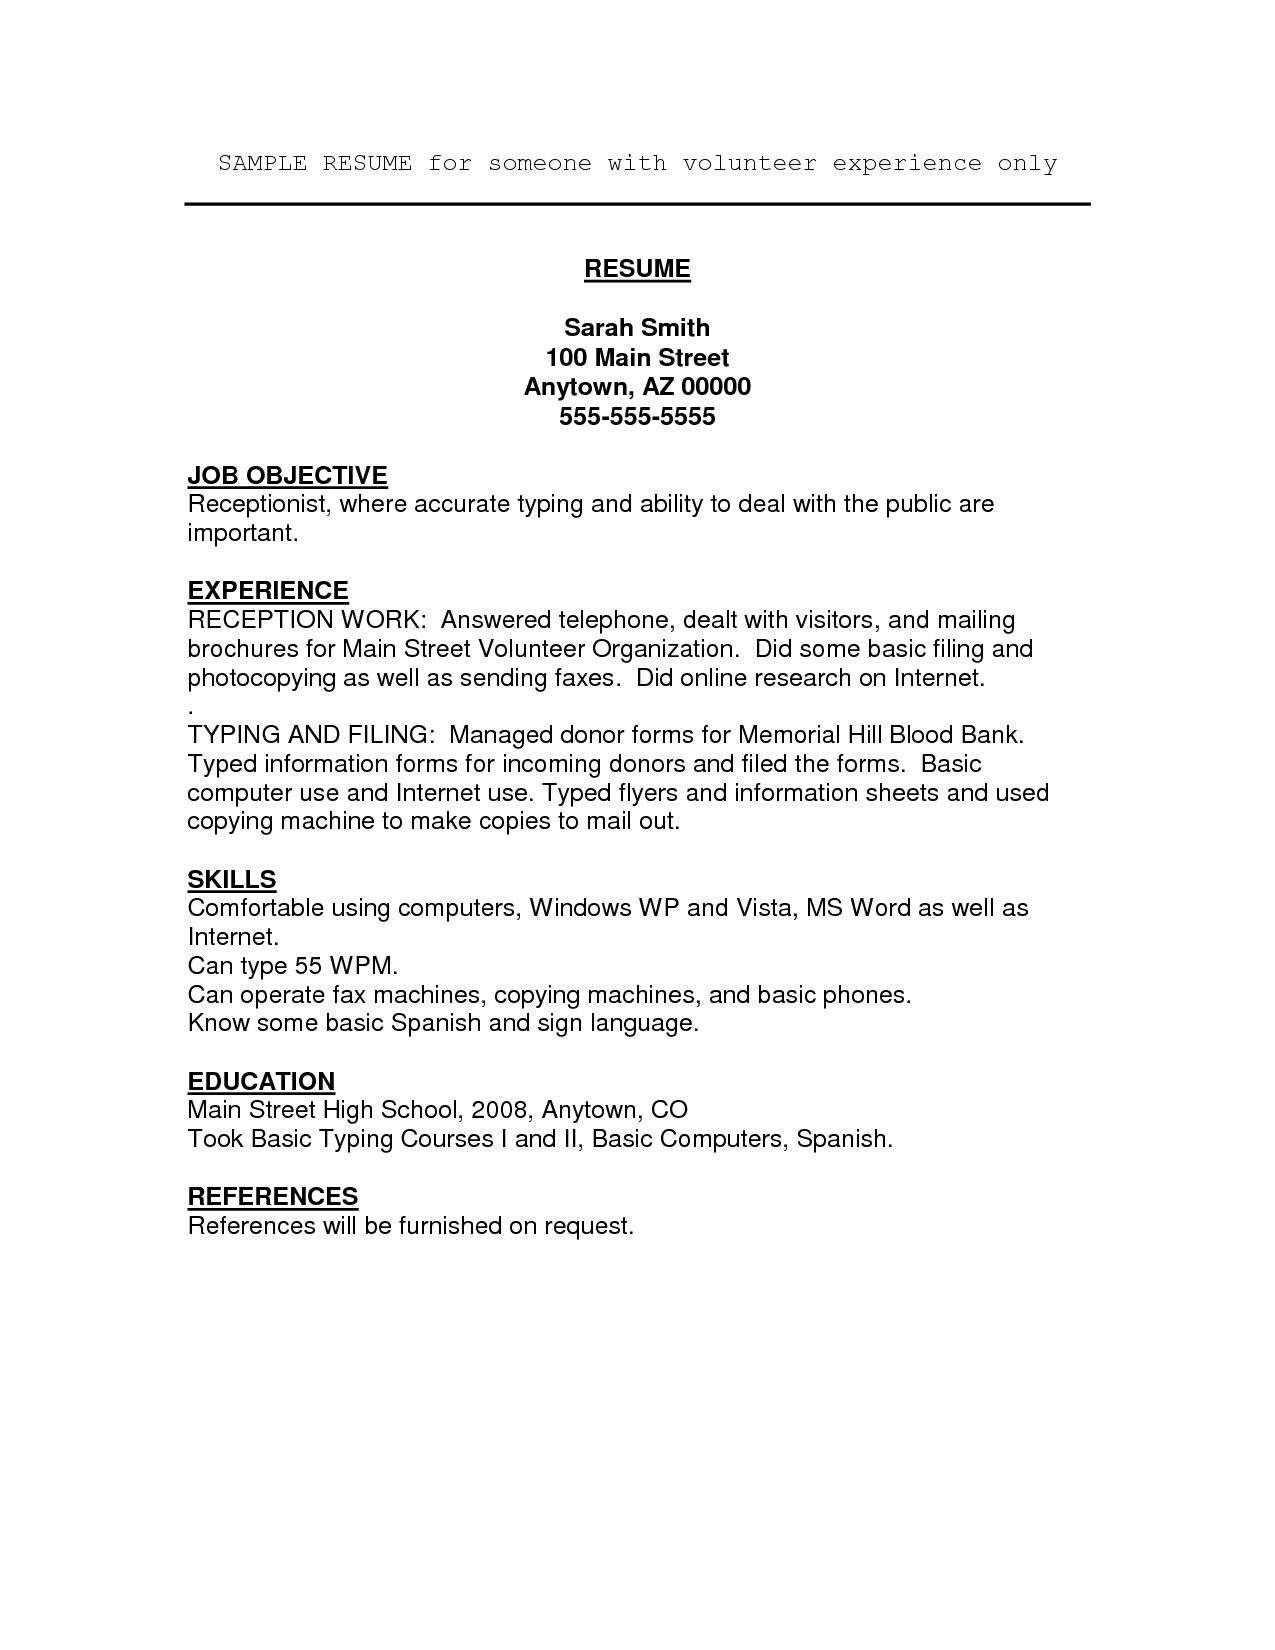 Job Resume Volunteer Experience - http://www.resumecareer.info/job ...